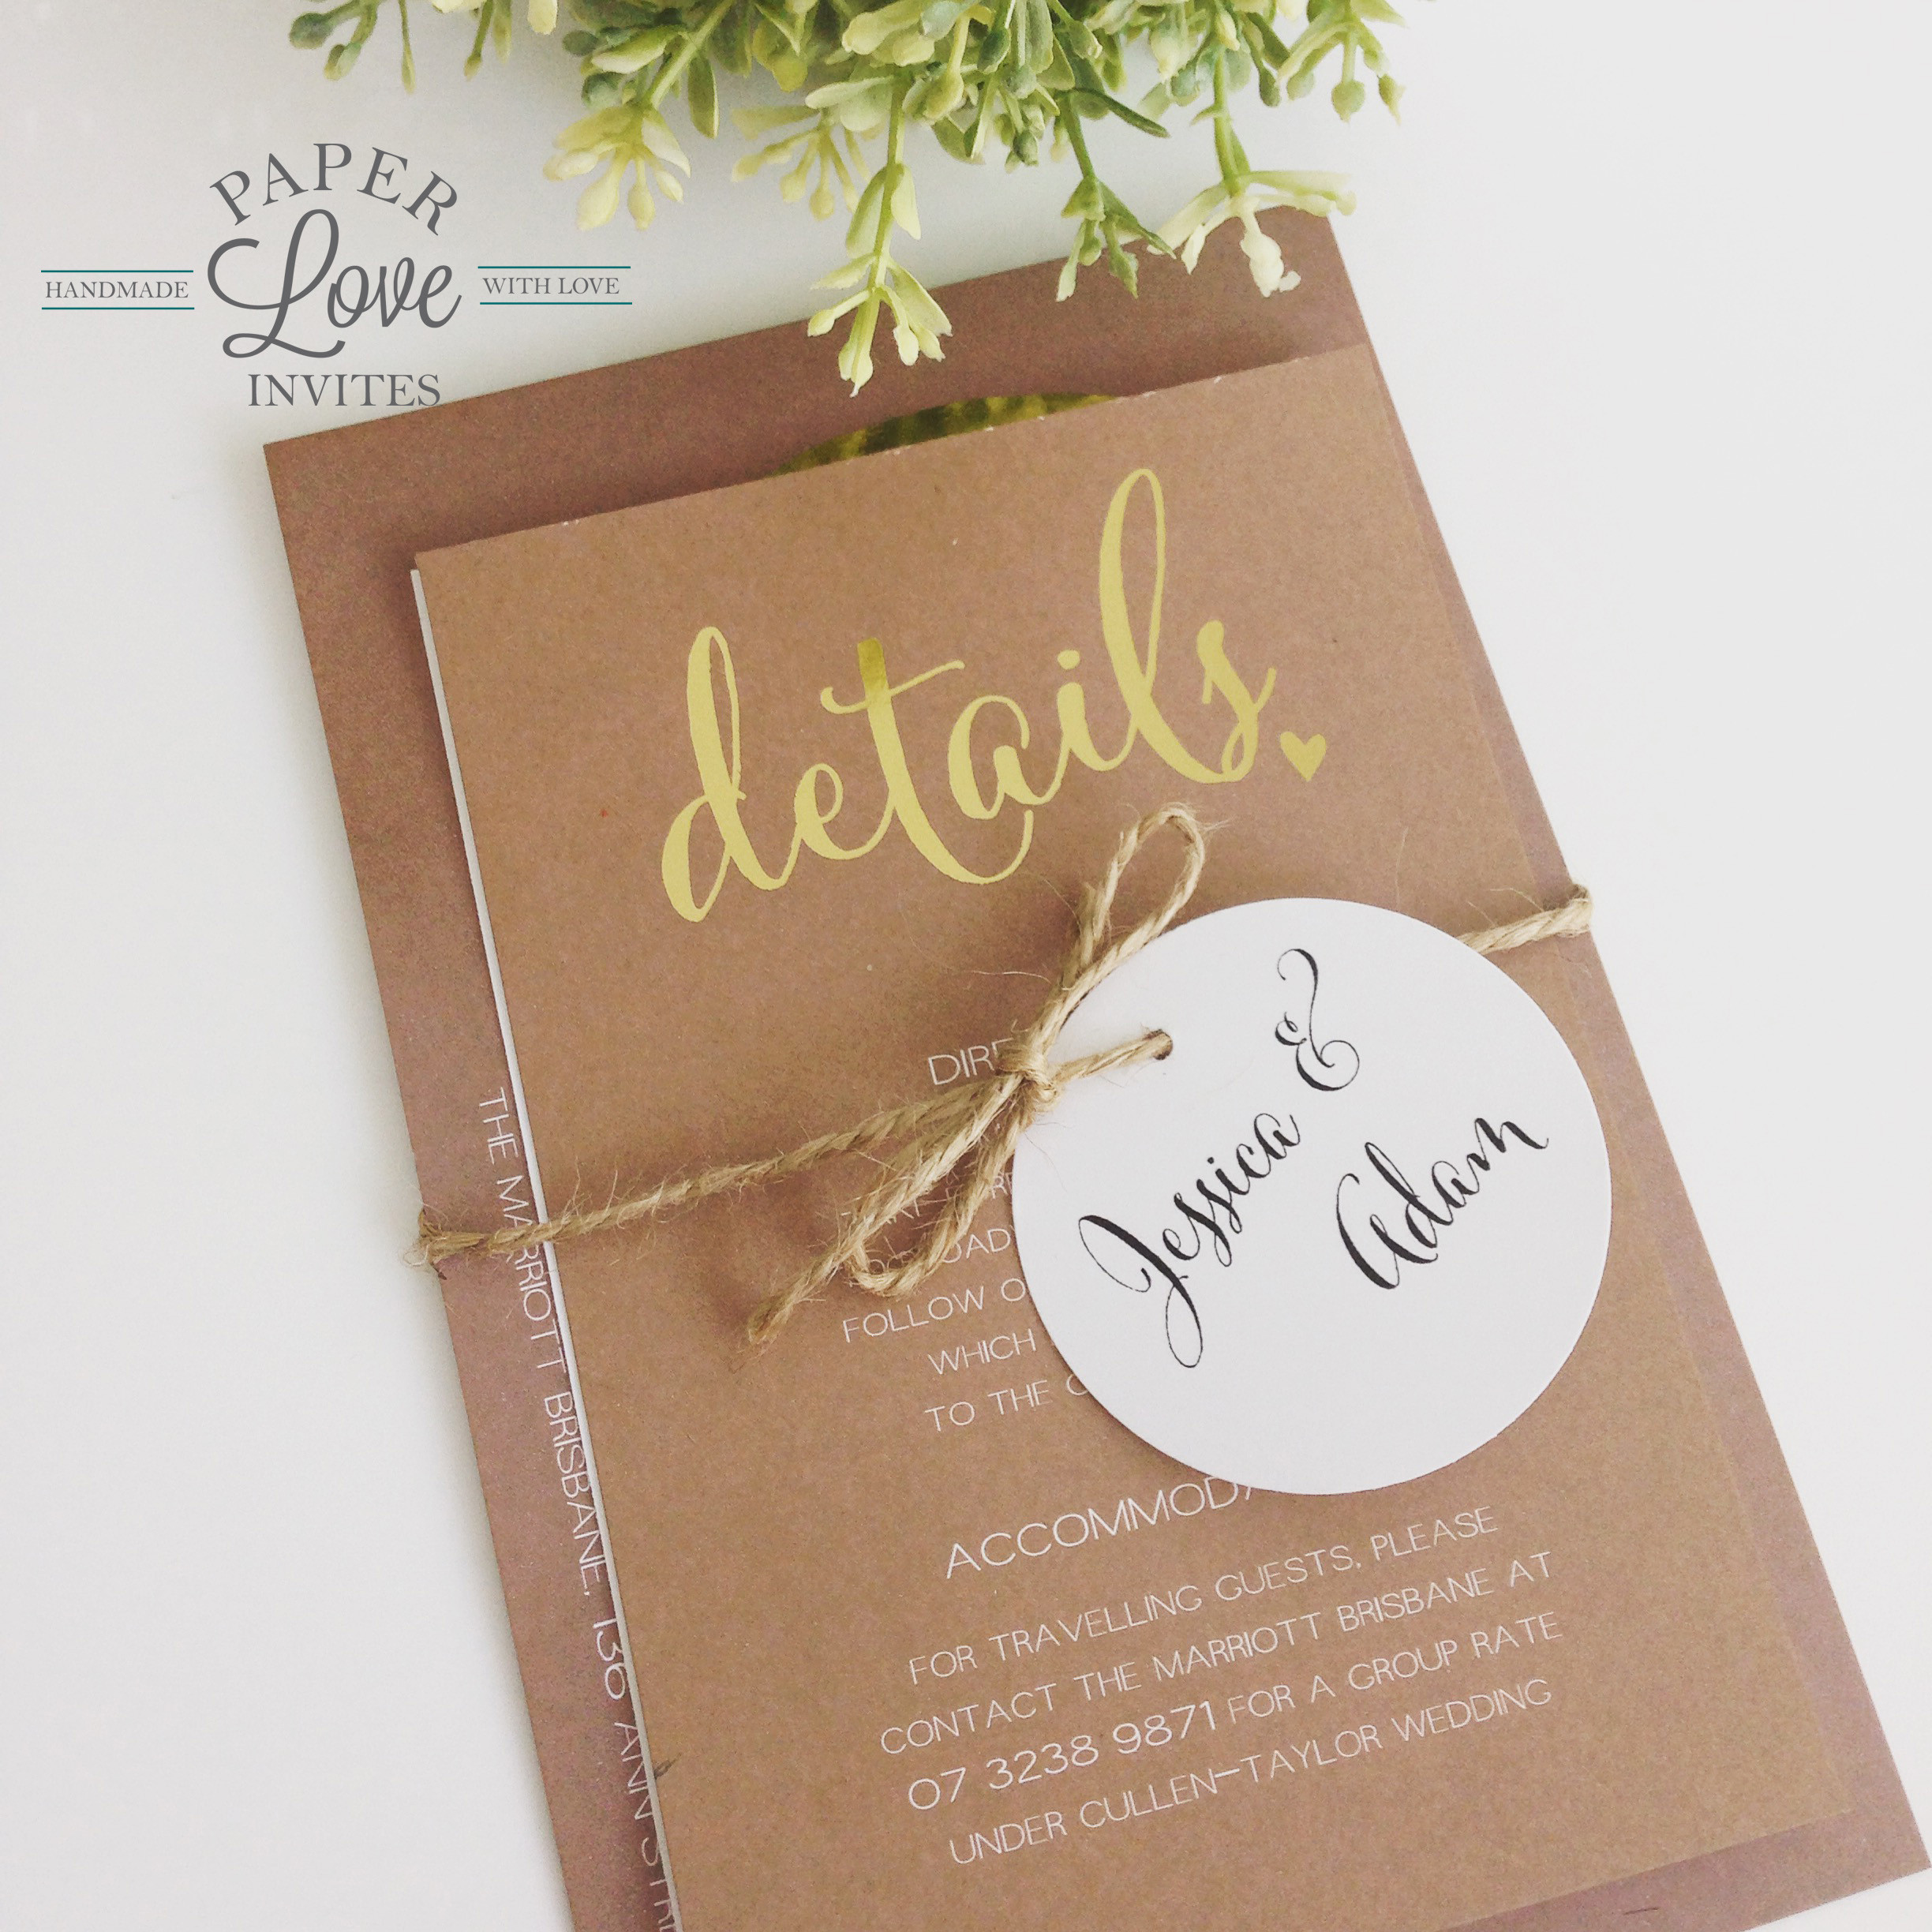 Wedding invitations and Stationery | Paper Love | Gallery